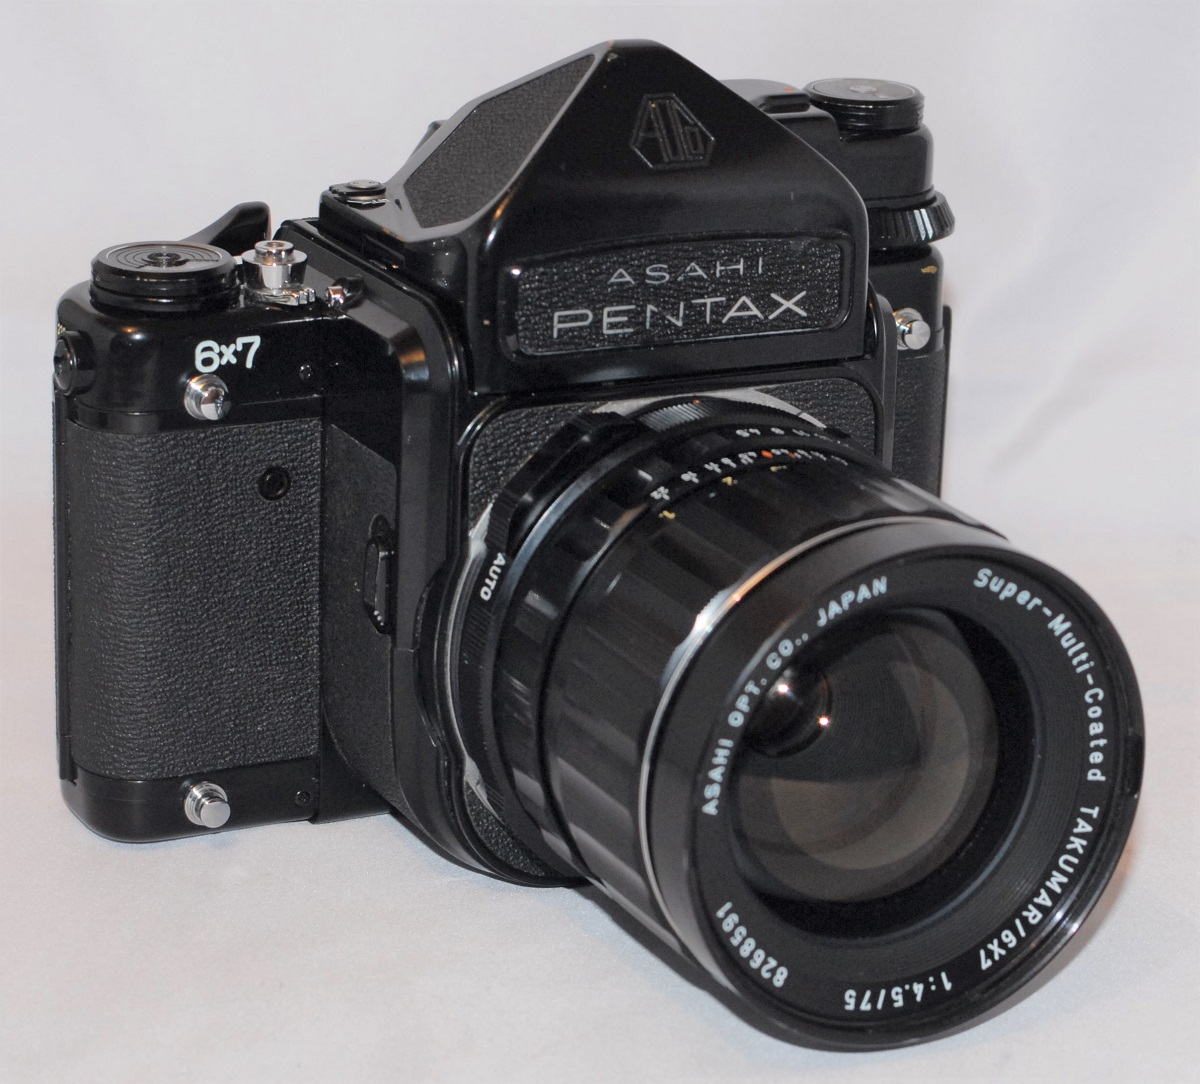 Pentax 6x7 + 75mm f4 .5 lens. Excellent condition.